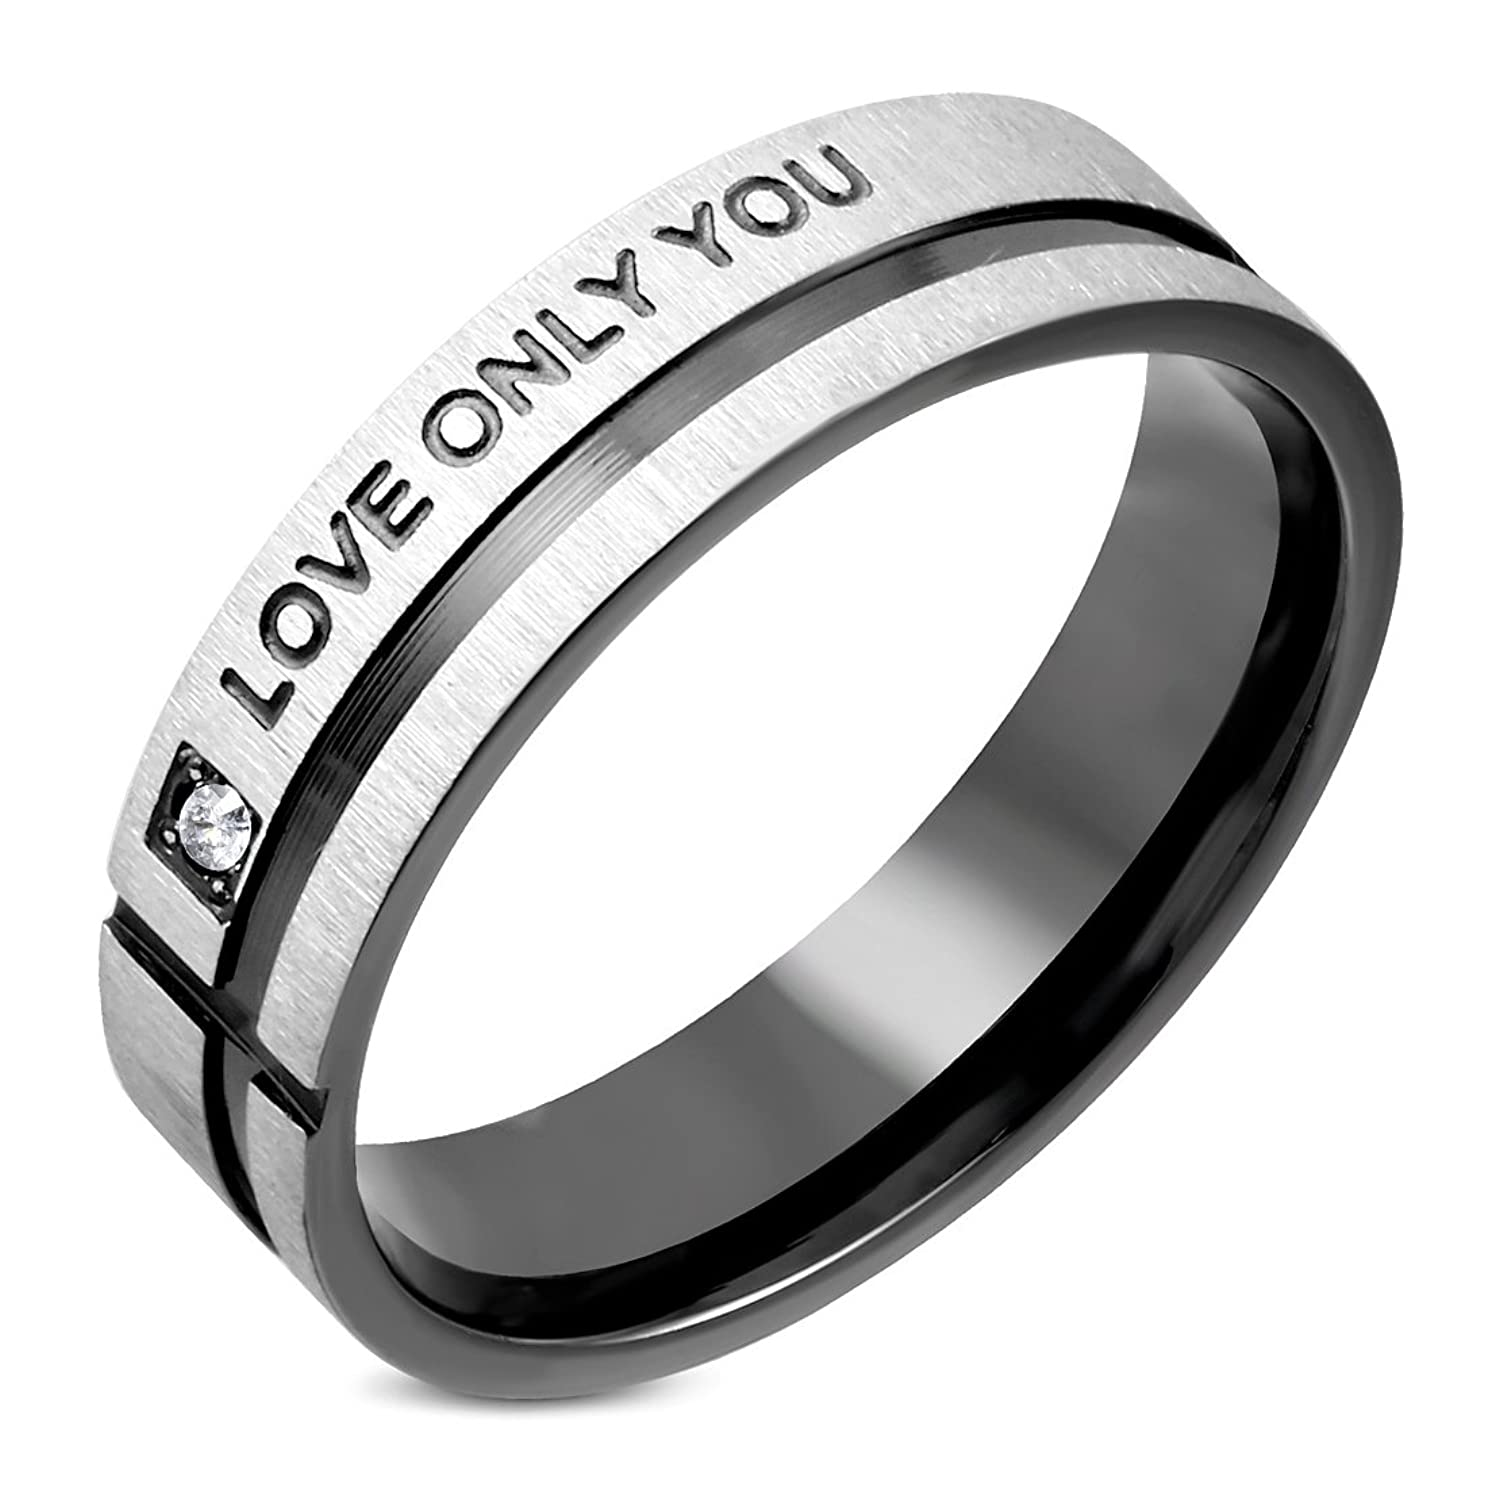 Stainless Steel 2 Color Affirmation-Love Comfort Fit Wedding Flat Band Ring